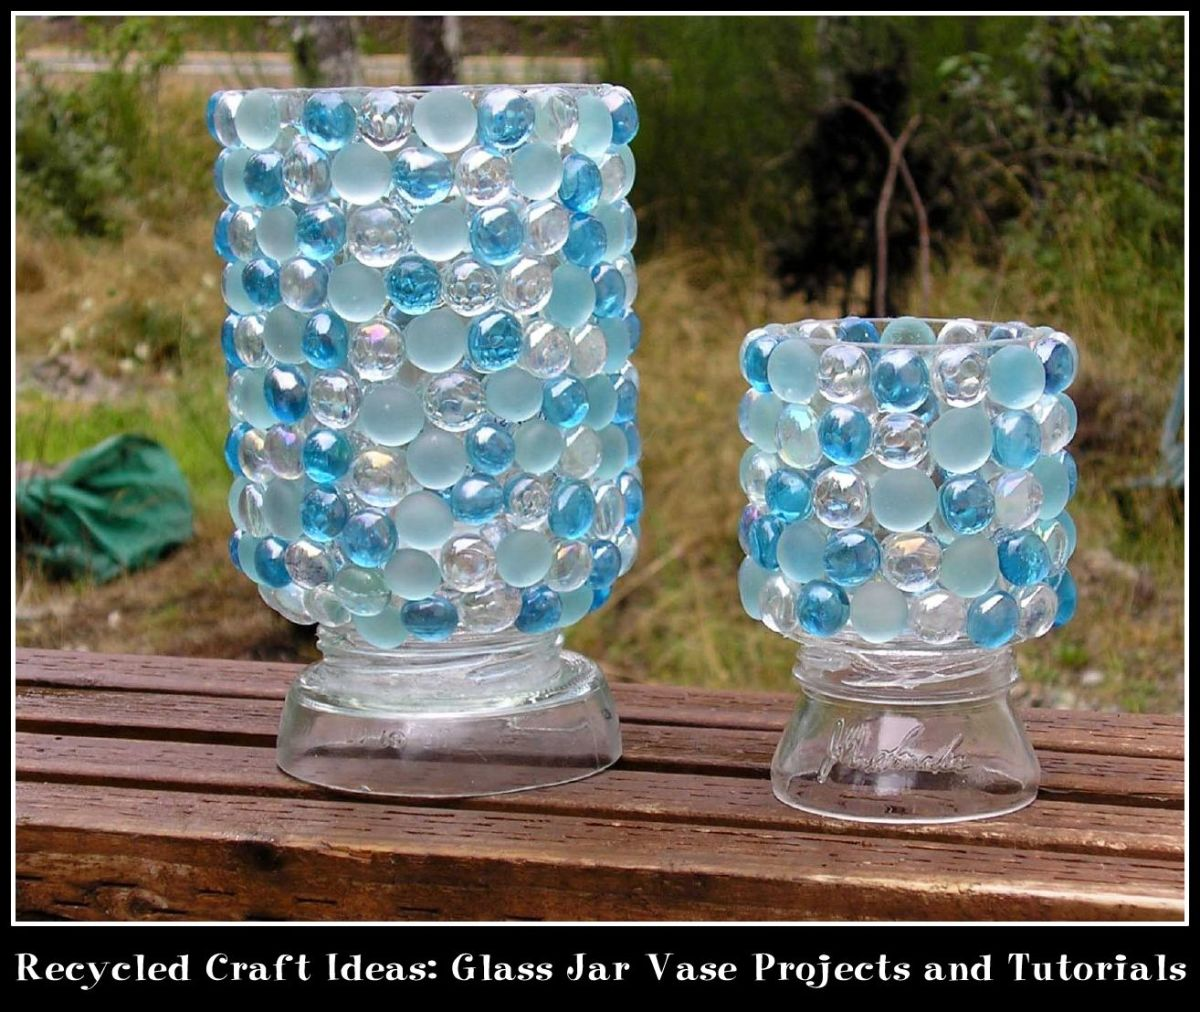 Recycled craft ideas glass jar vase projects and tutorials for Recycled glass art projects